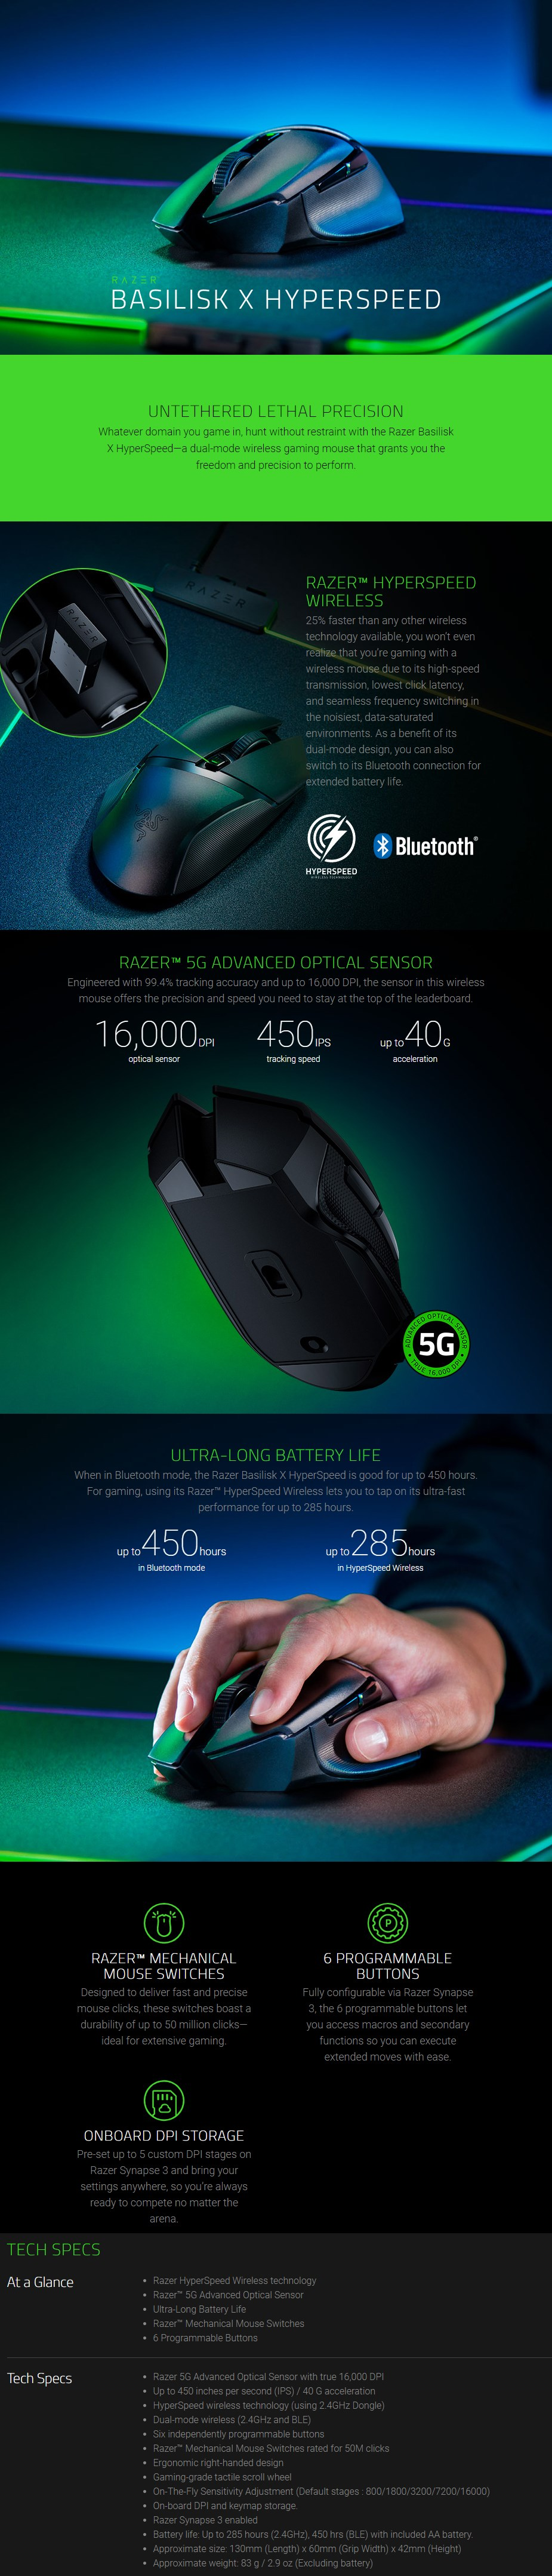 Razer Basilisk X HyperSpeed Wireless Optical Gaming Mouse - Overview 1